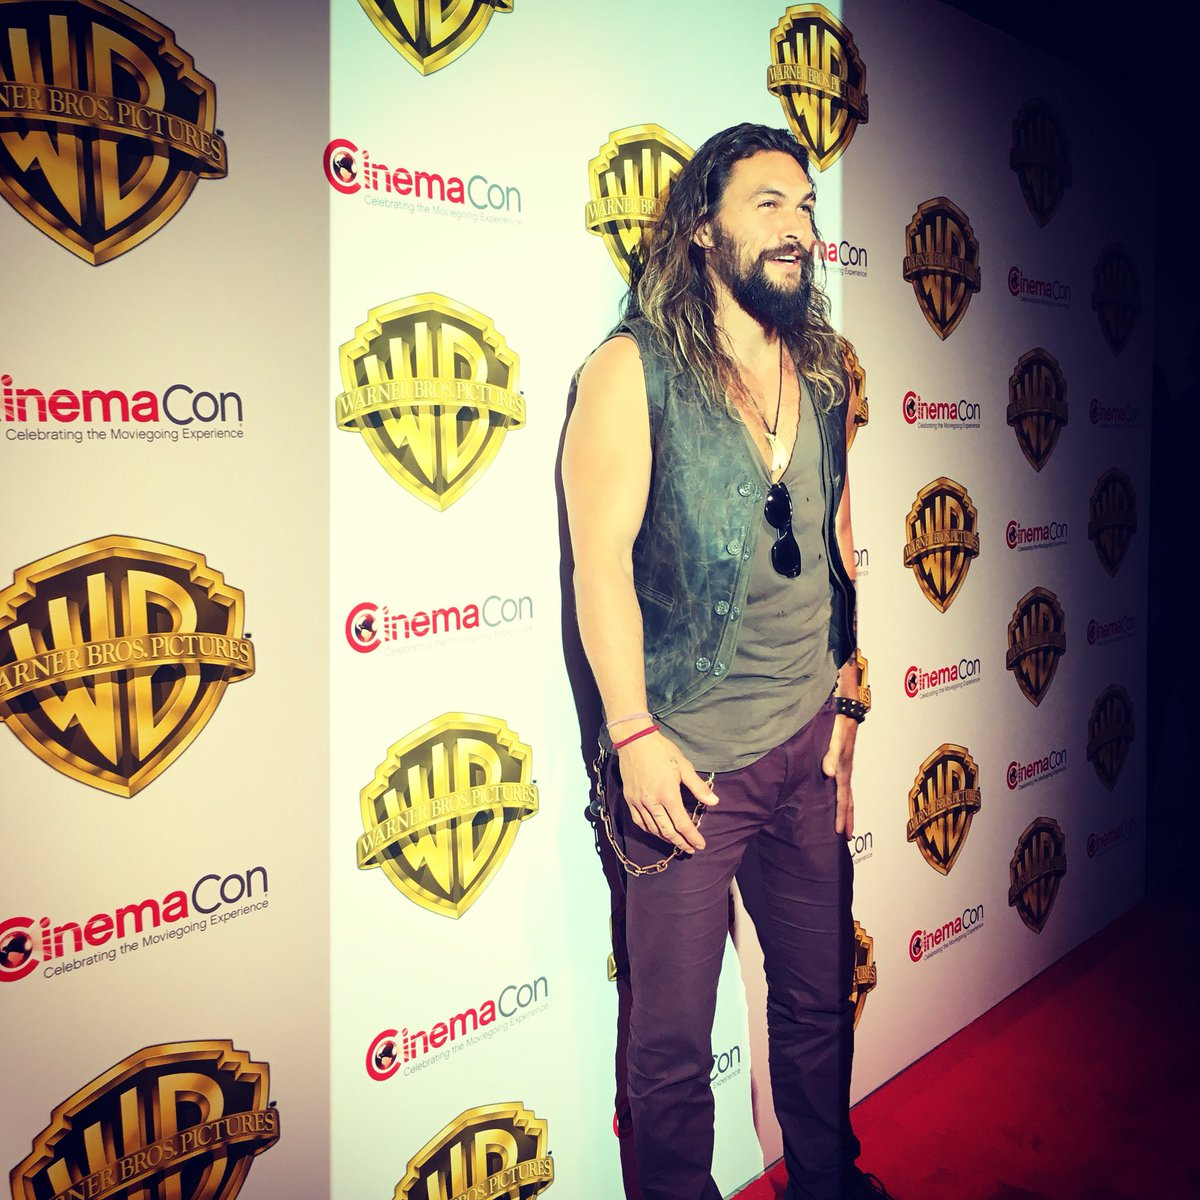 . @prideofgypsies takes a break from the ocean today to attend @Cinema...